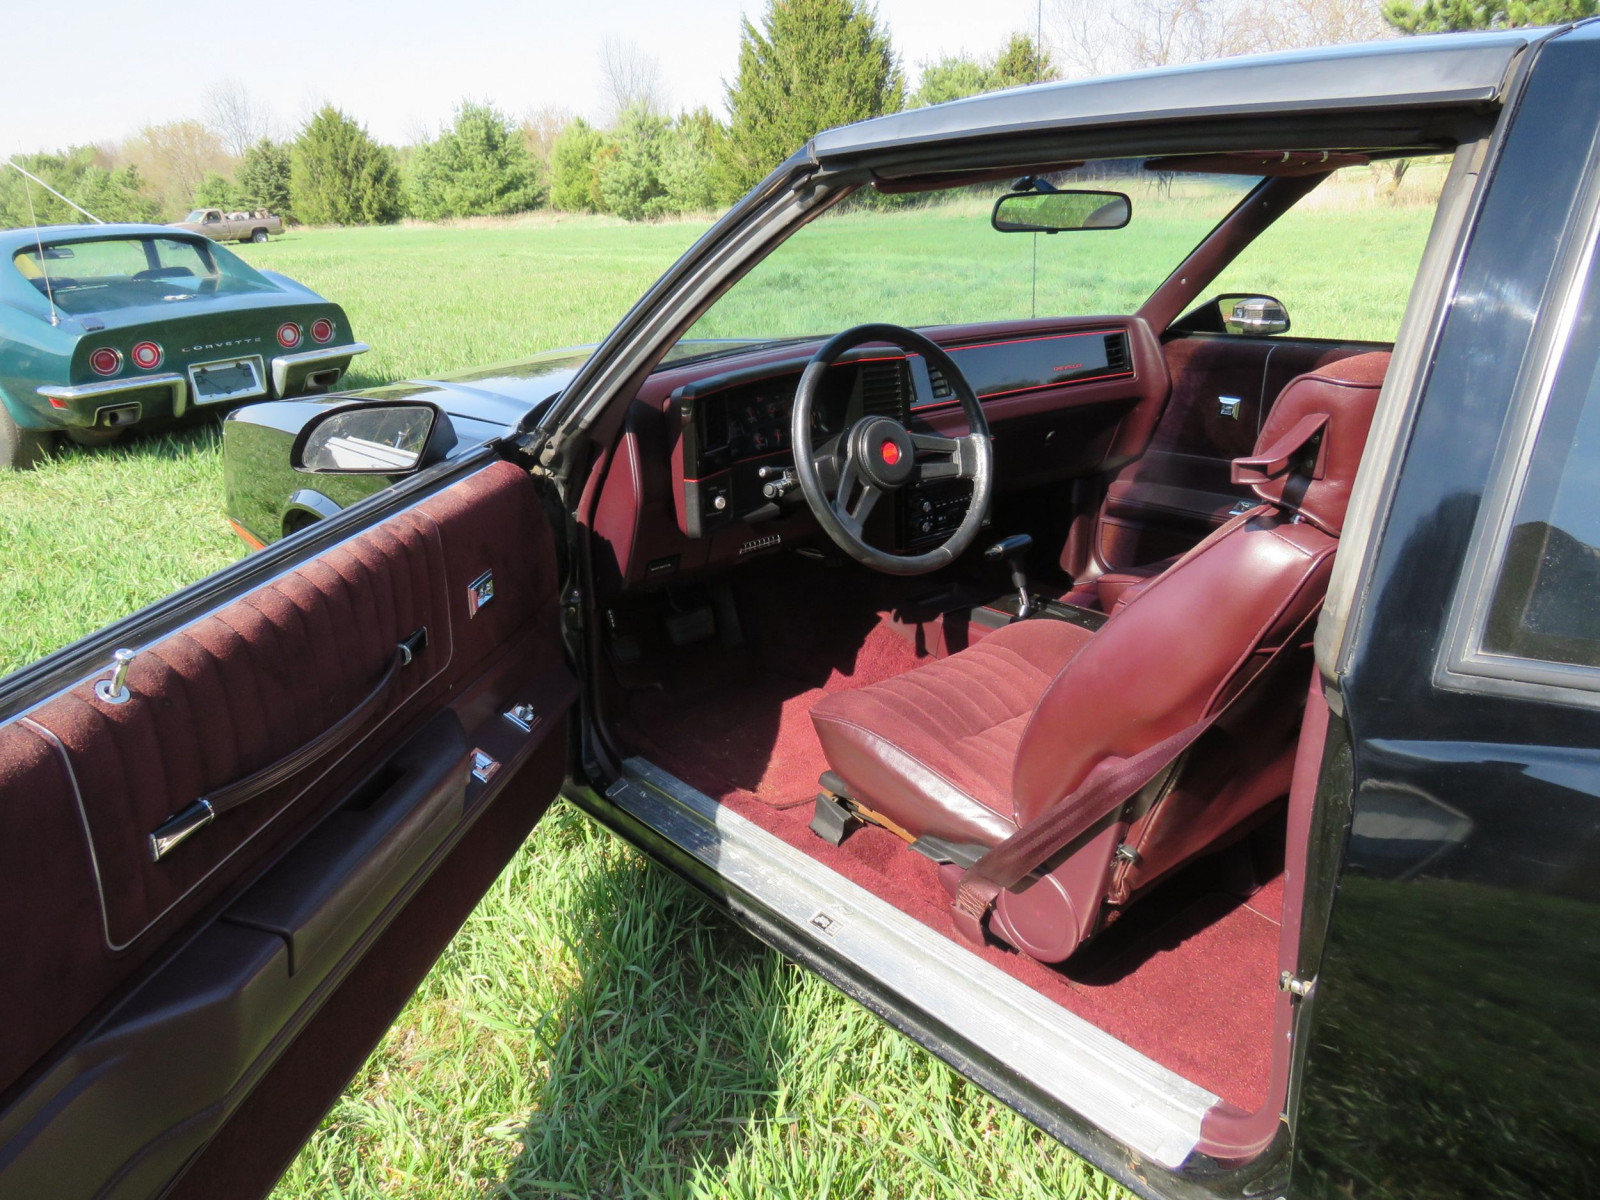 1987 Chevrolet Monte Carlo SS - Image 7